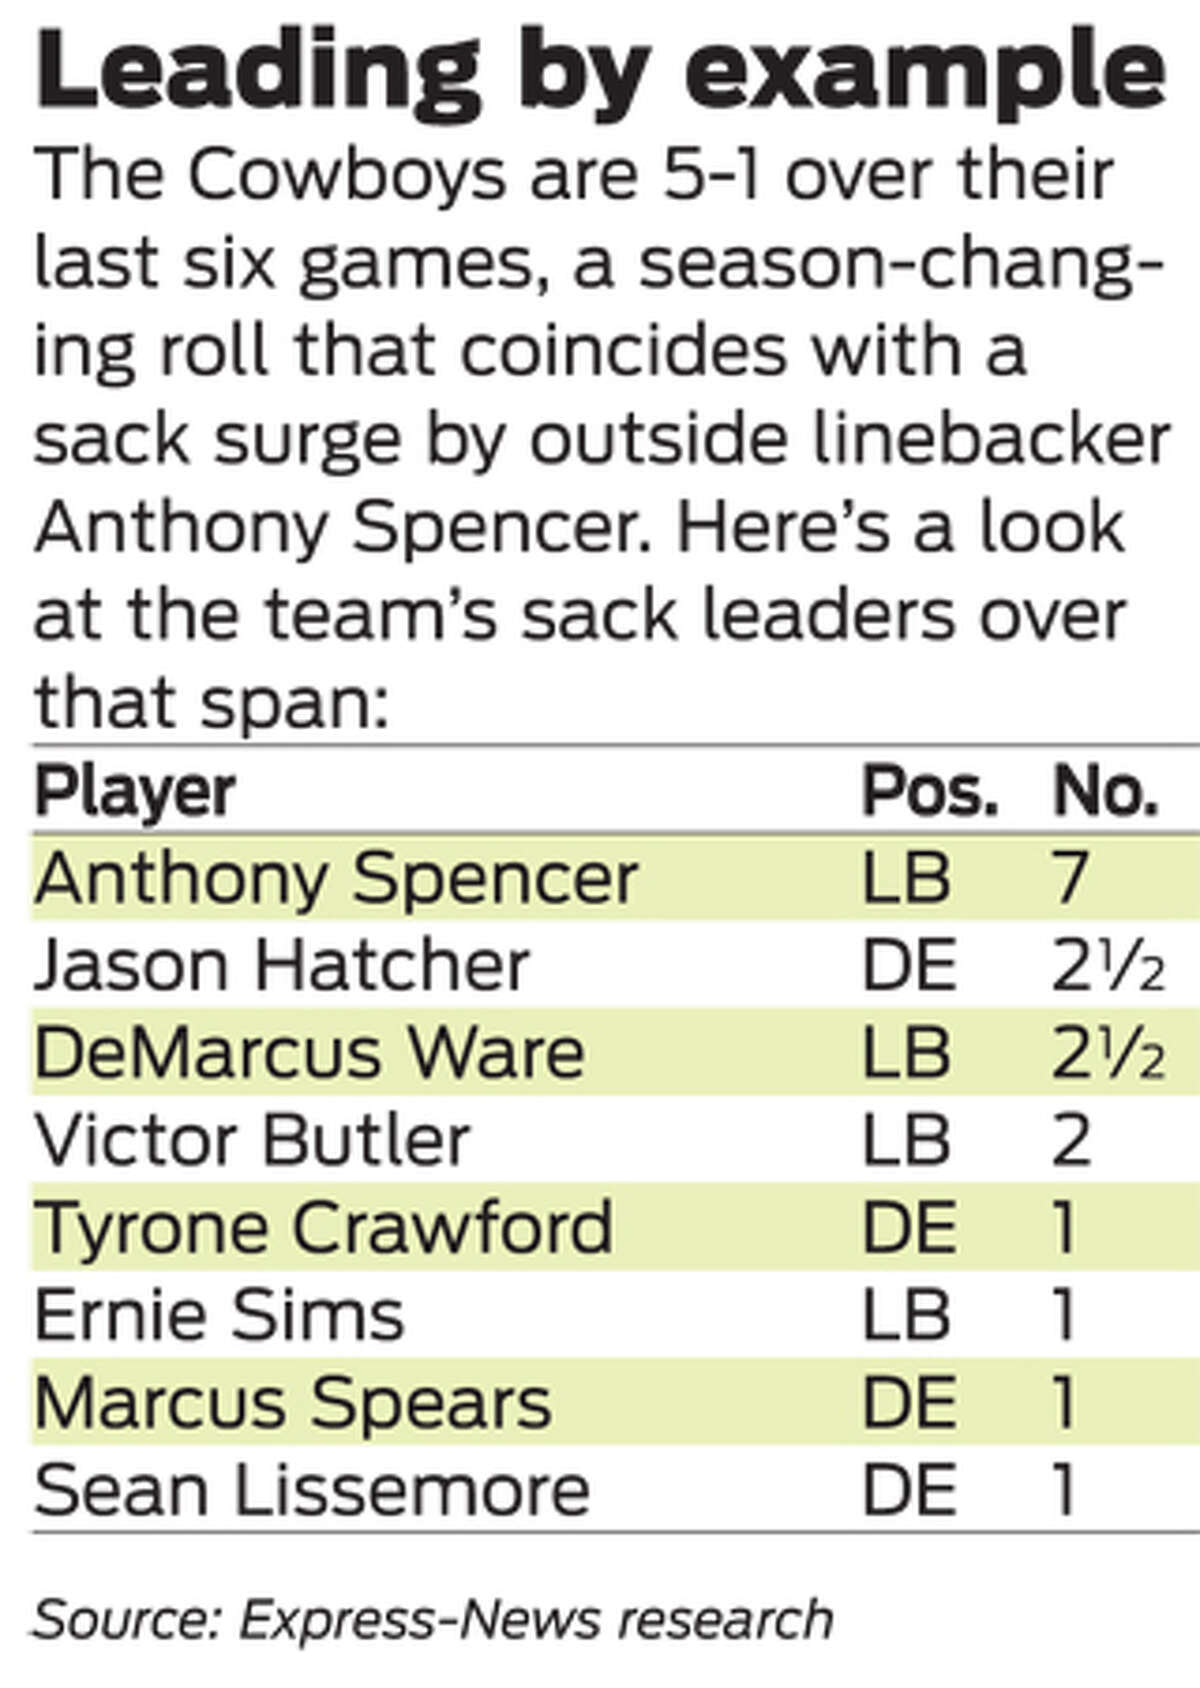 Here's a look at the Cowboys' sack leaders over the last six games.